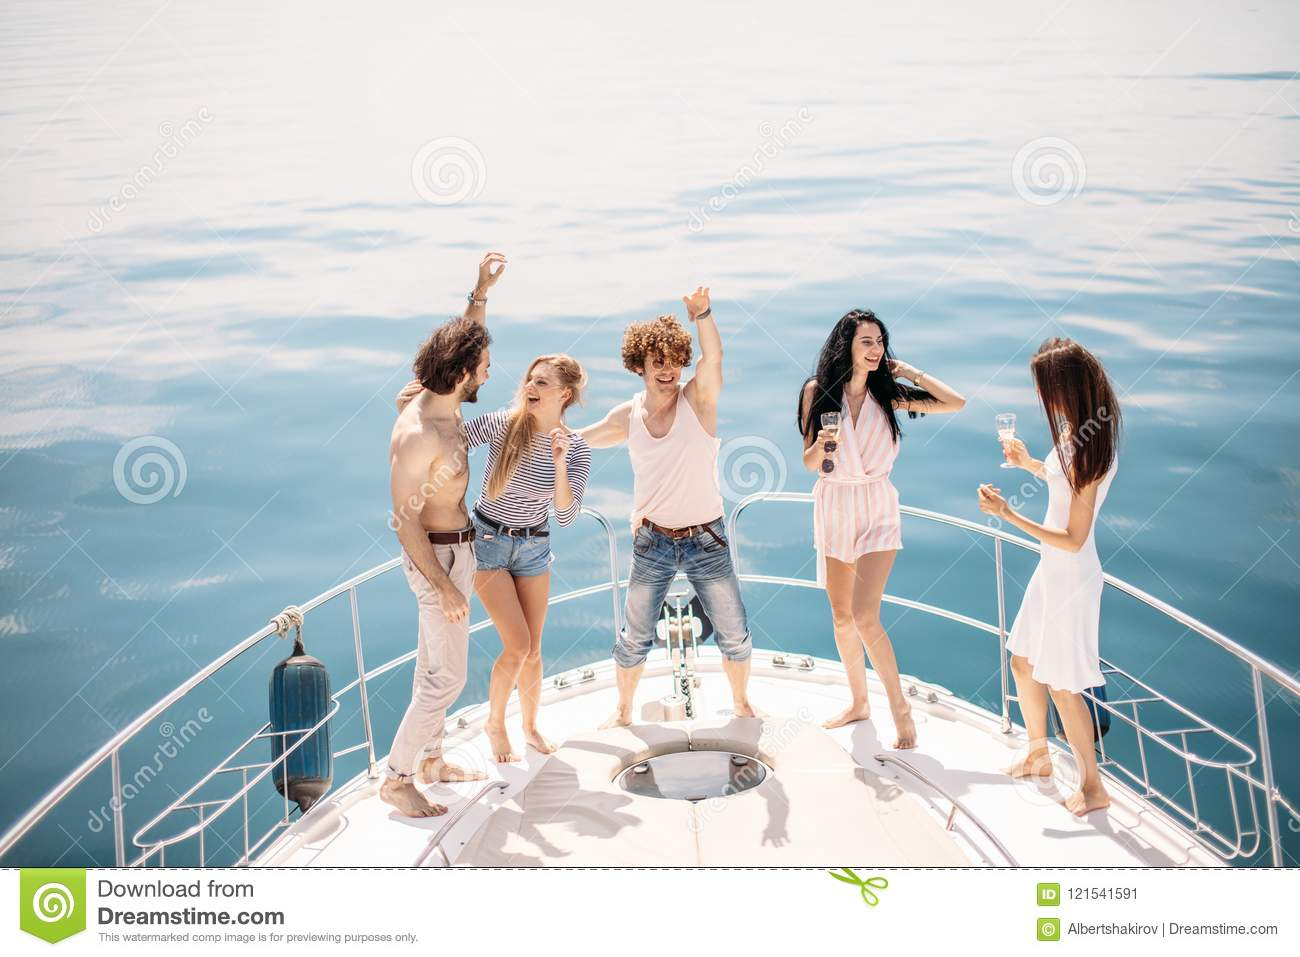 Marine cruise and vacation - youngsters with champagne glasses on boat or yacht